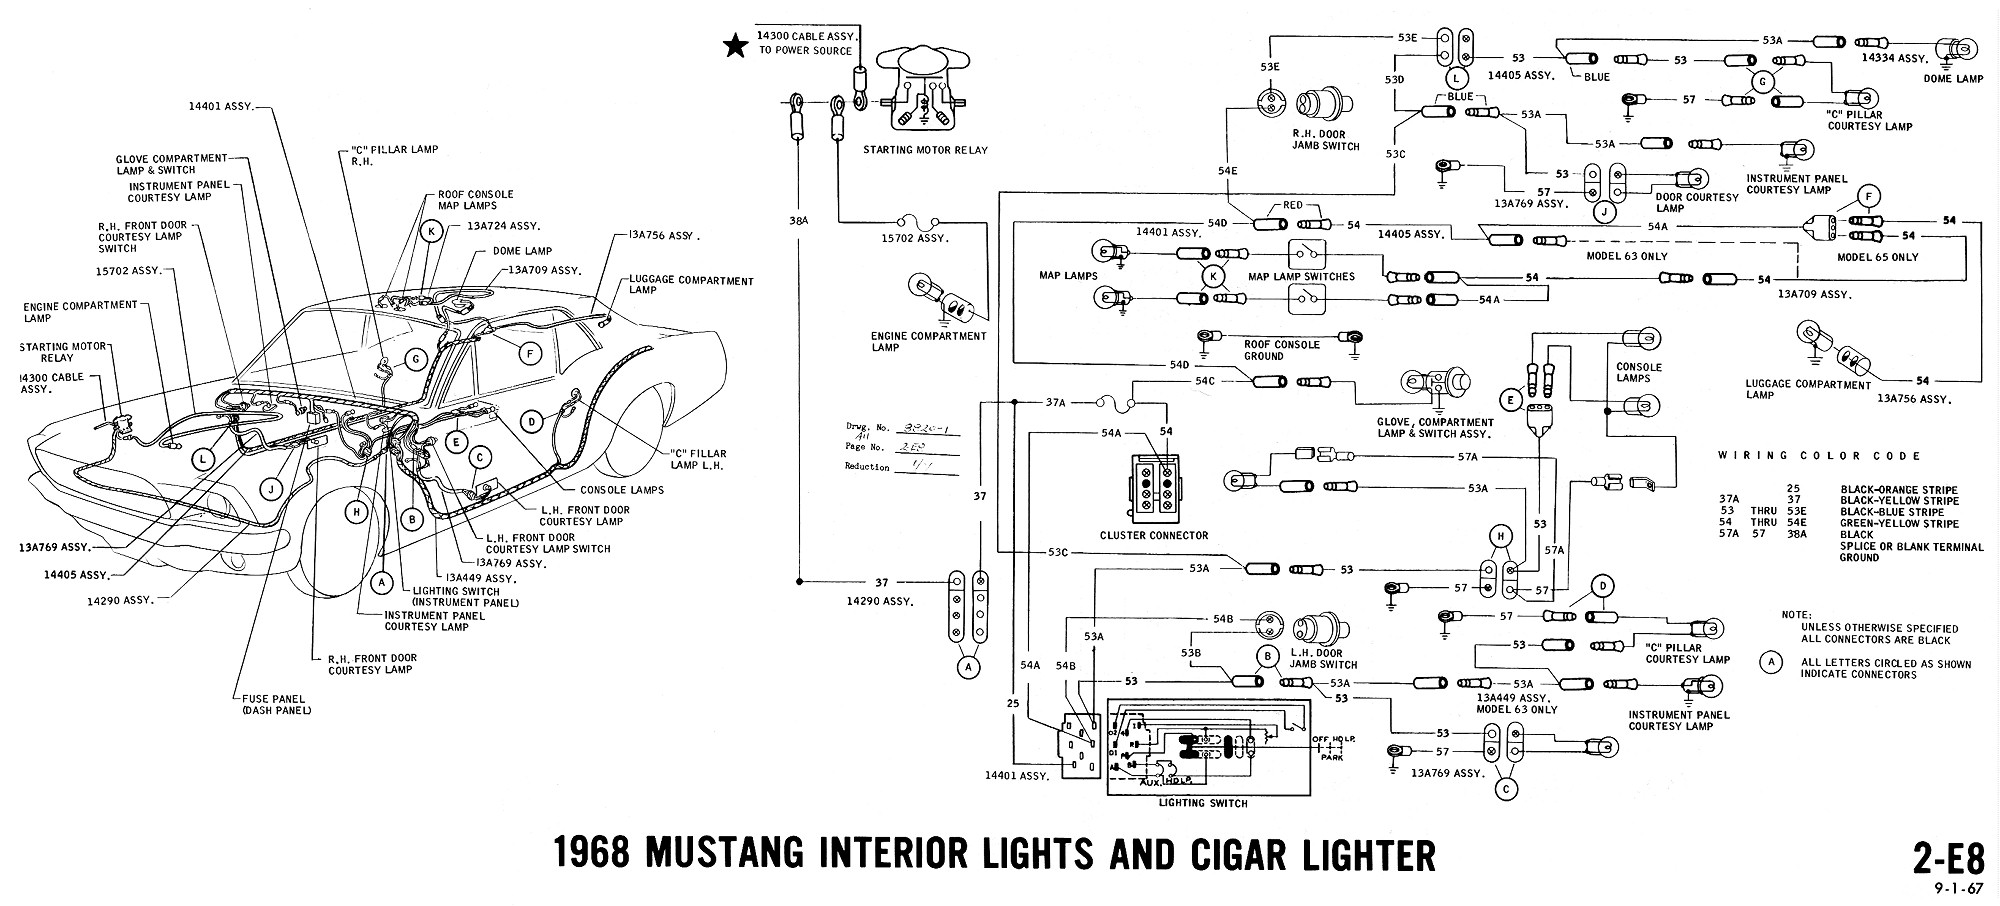 hight resolution of 1968 mustang wiring diagrams evolving software 1968 mustang electrical diagram 1968 mustang air conditioning wiring diagram